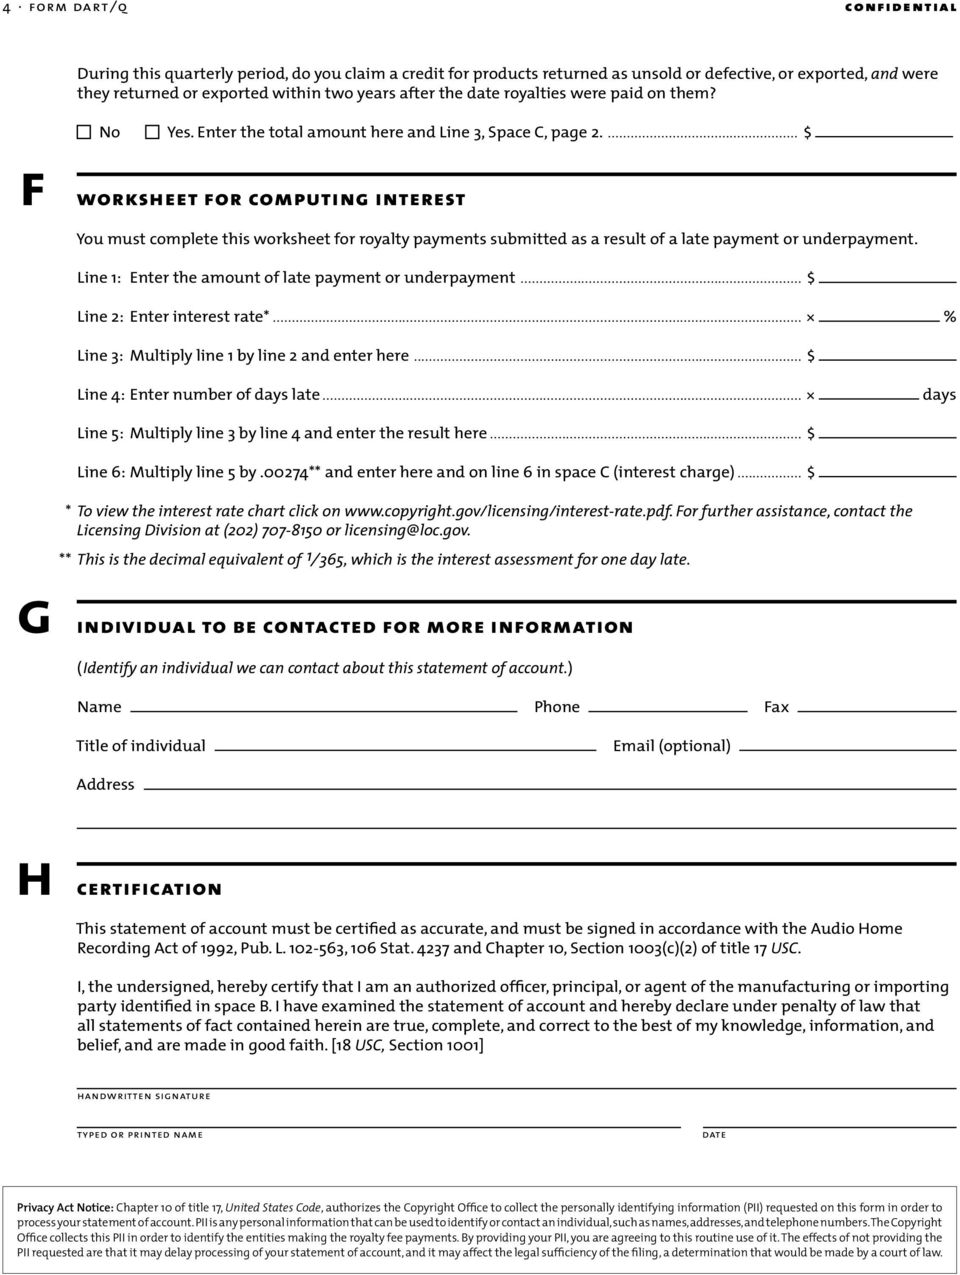 ... $ worksheet for computing interest You must complete this worksheet for royalty payments submitted as a result of a late payment or underpayment.